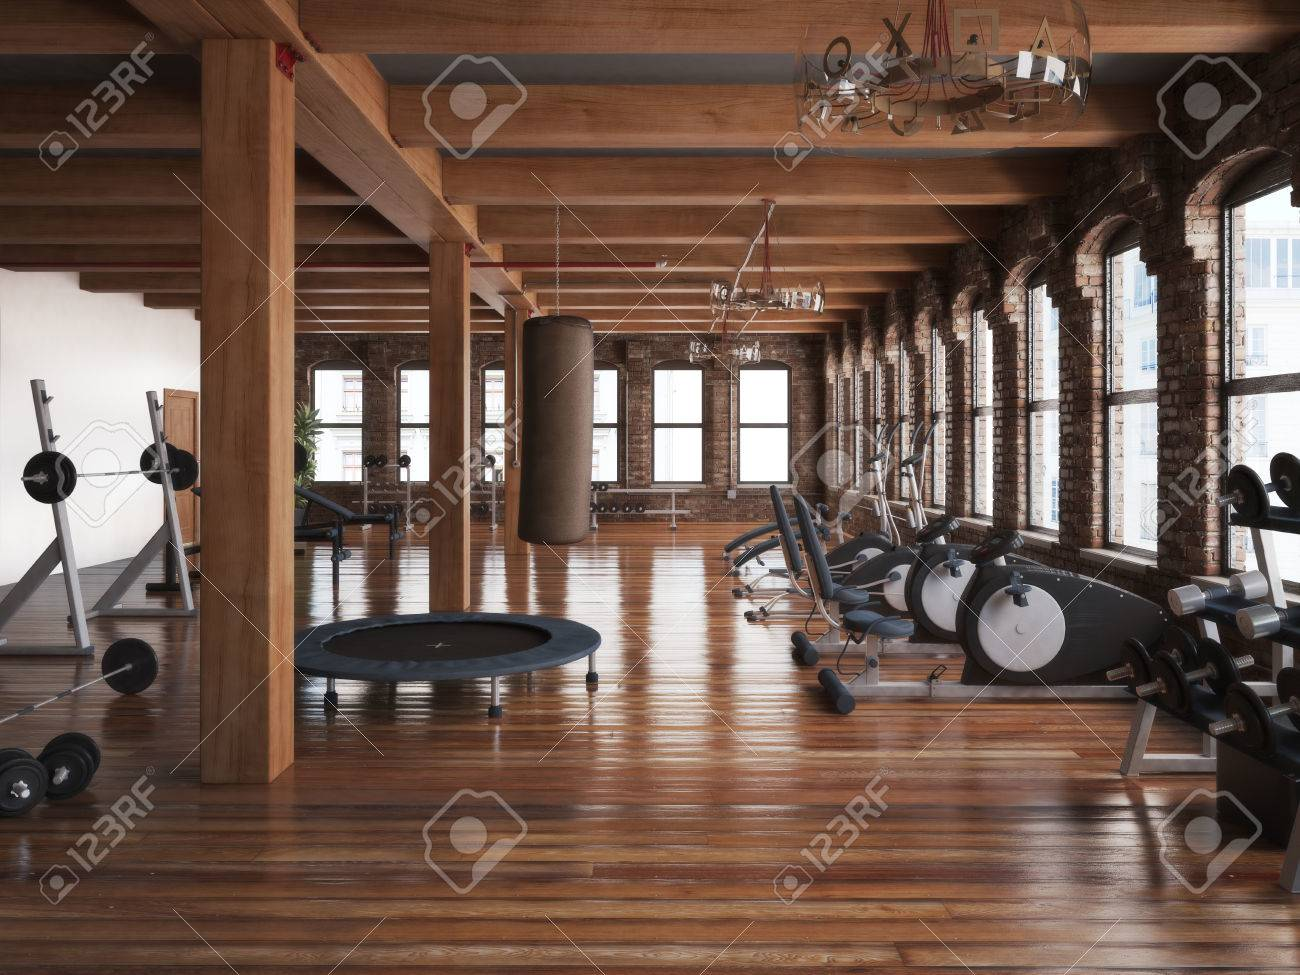 Illustration   Sports Club Cross Fit Gym Interior. Photo Realistic 3d  Illustration